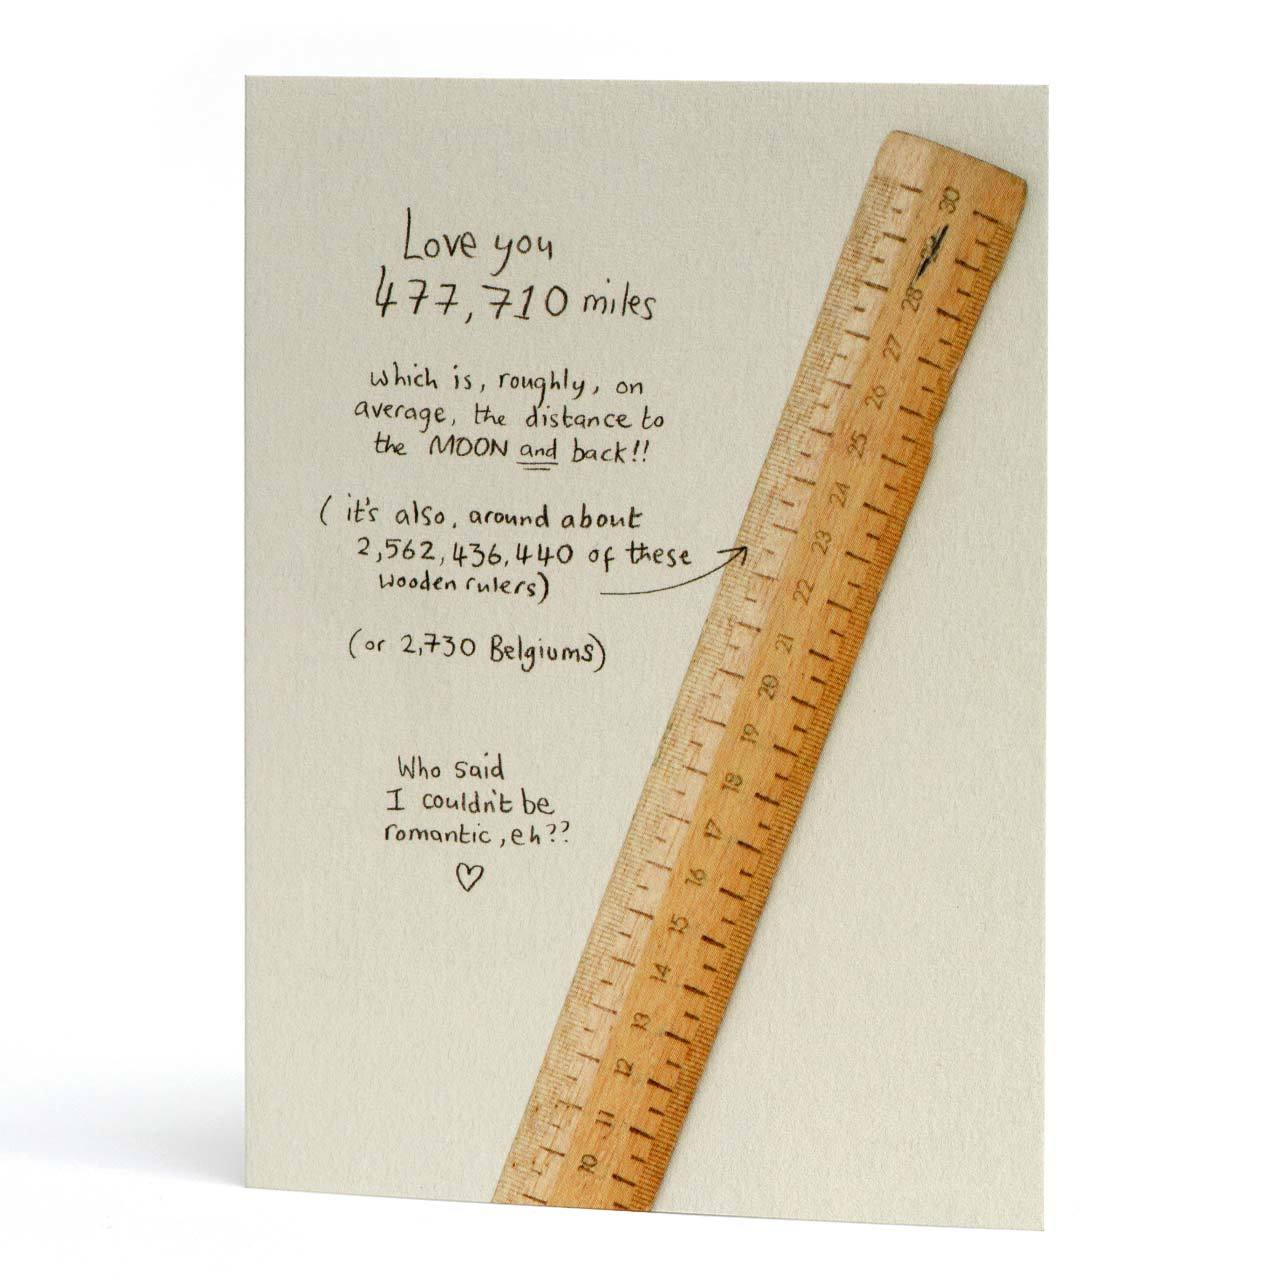 477,710 Miles Greeting Card